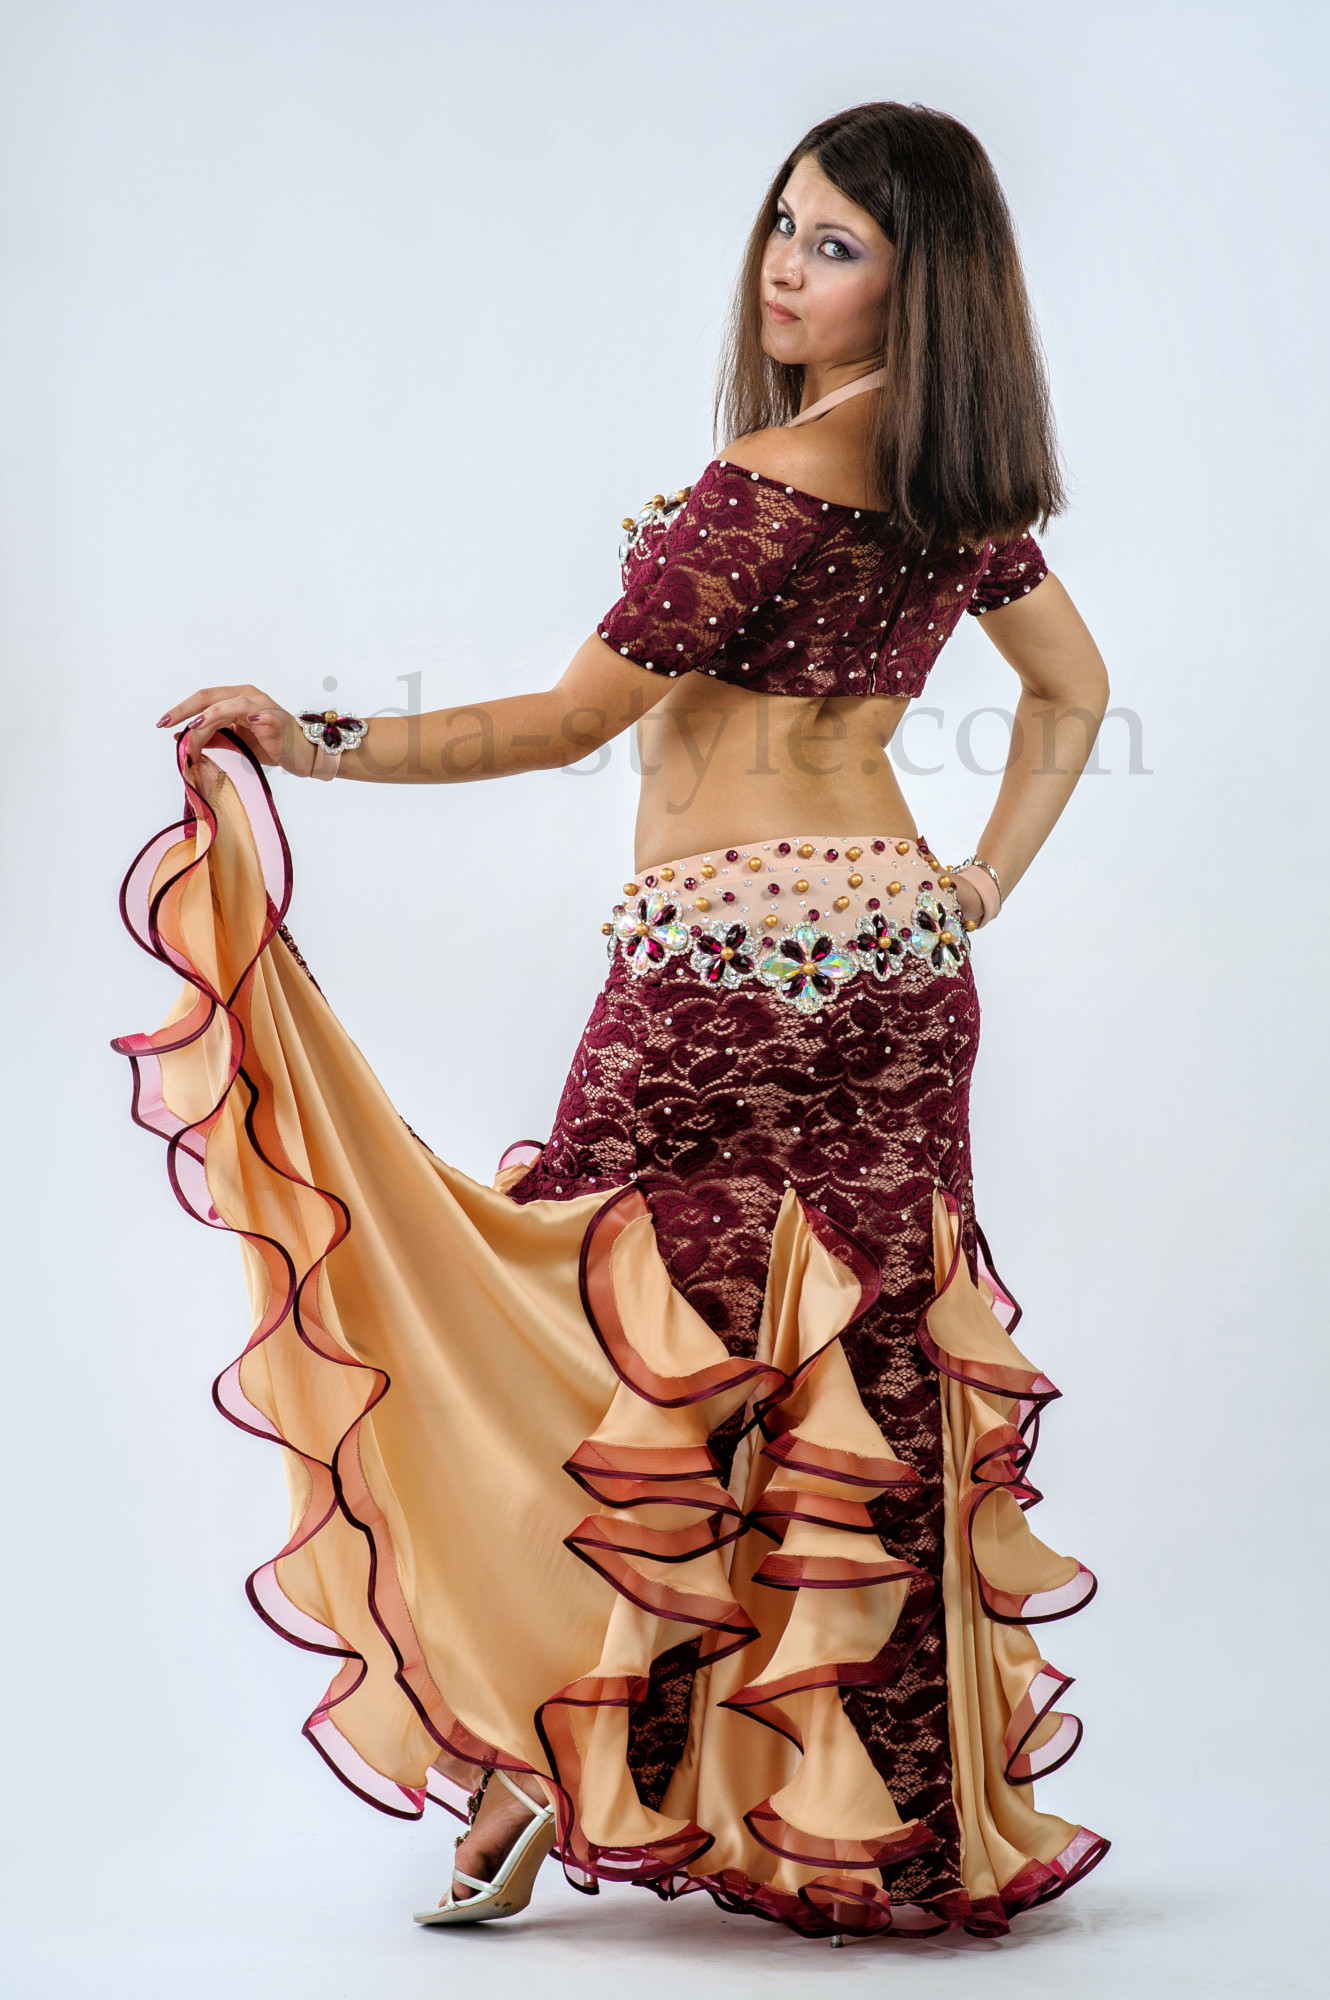 Professional belly dance costume in black and gold decorated with stones